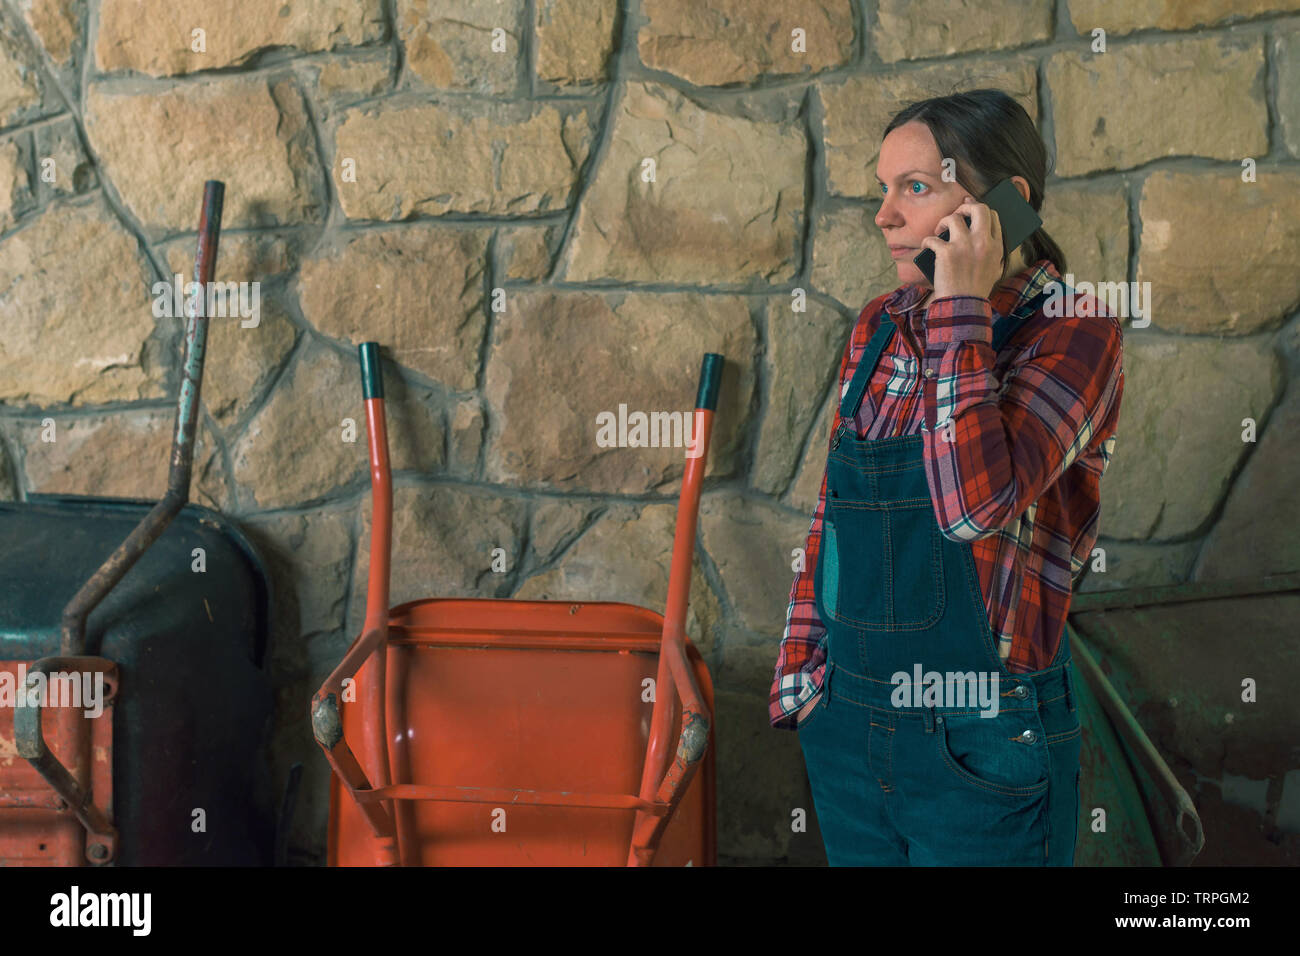 Worried female farmer talking on mobile phone in the stable. Adult woman in plaid shirt and denim overall trousers in telephone conversation. - Stock Image